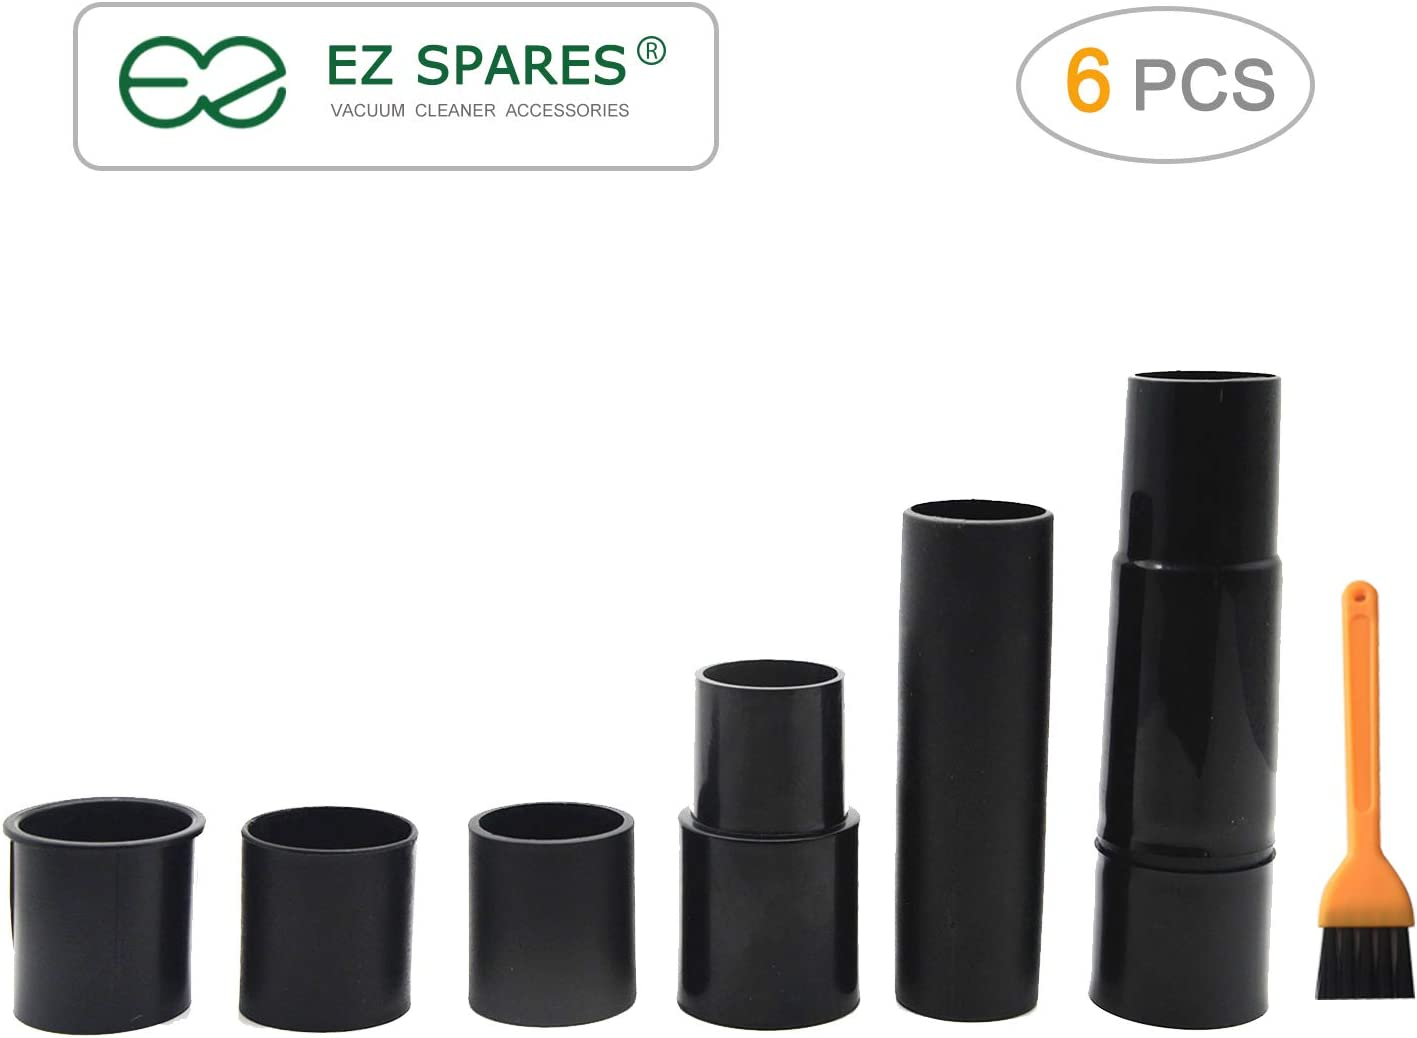 EZ SPARES Universal Vacuum Hose Adapter,Fit 1 3/16 to 1 1/4 to 1 3/4 to 1 1/2 inch Convertor,for All Different Vacuum Reducer Hoses Attachments,Compatible with Common Models-6 Pcs